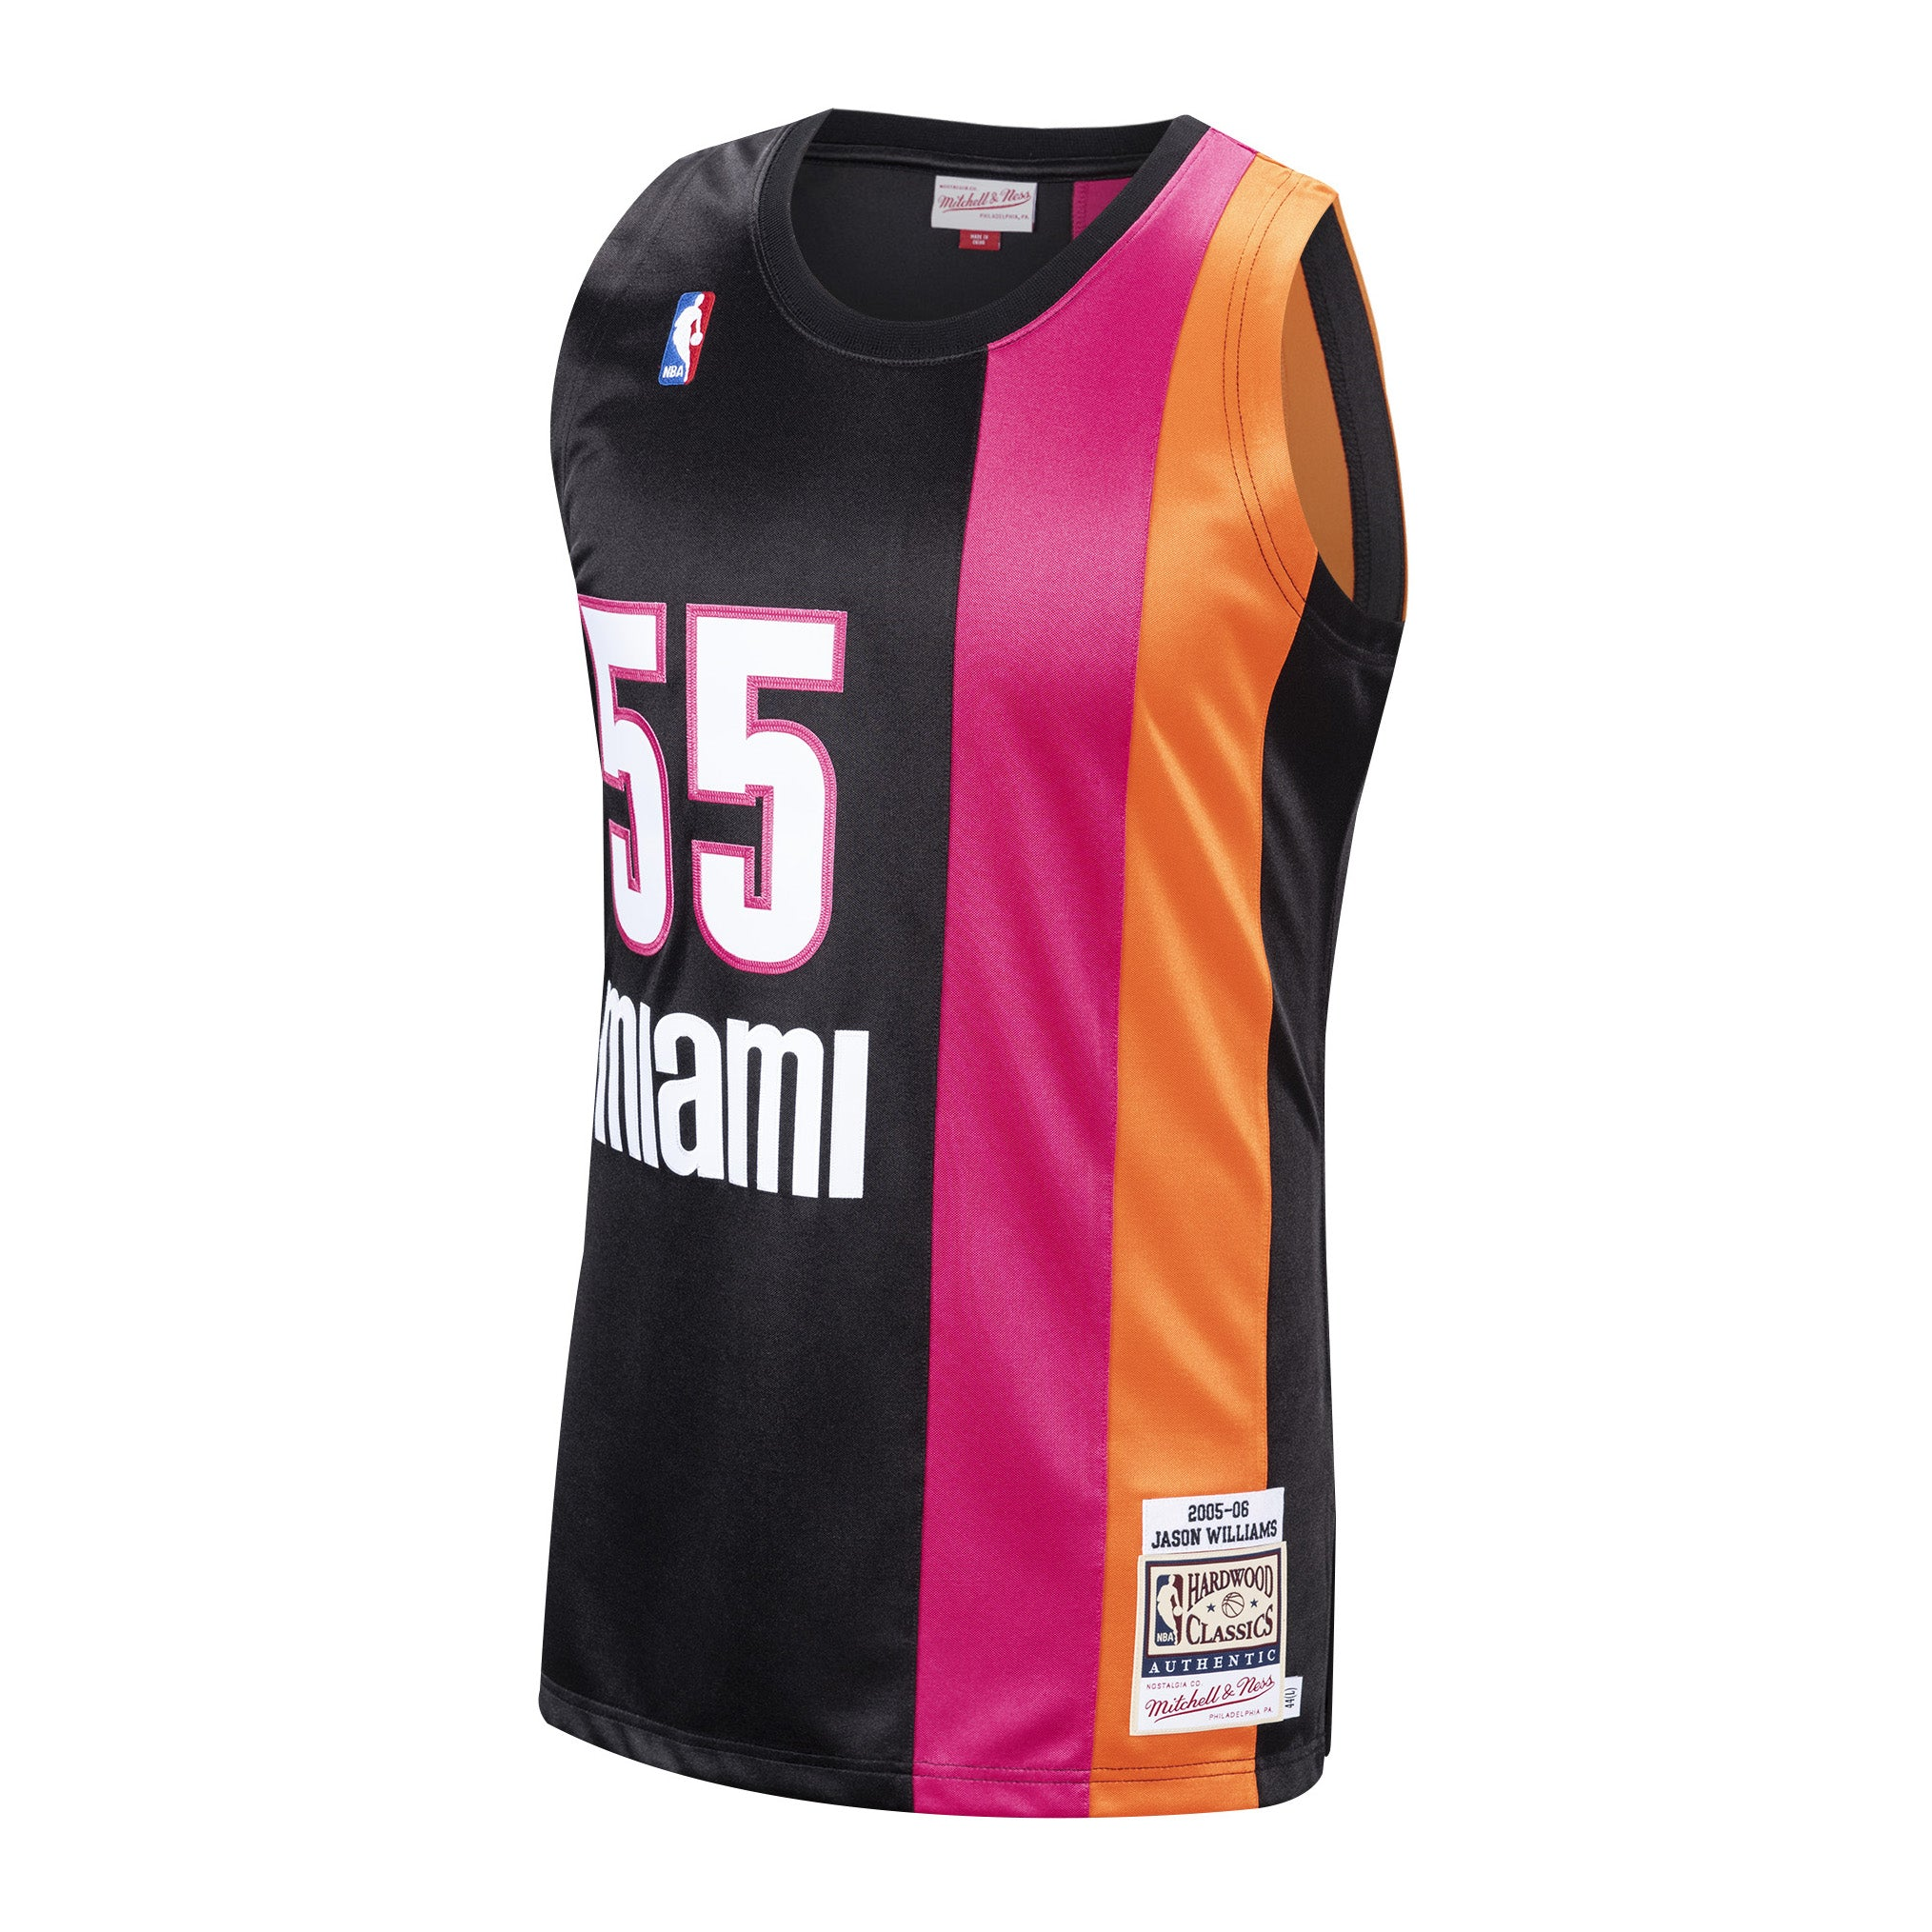 huge selection of 09f04 f14b5 Jason Williams Miami HEAT NBA Authentic Hardwood Classic ...